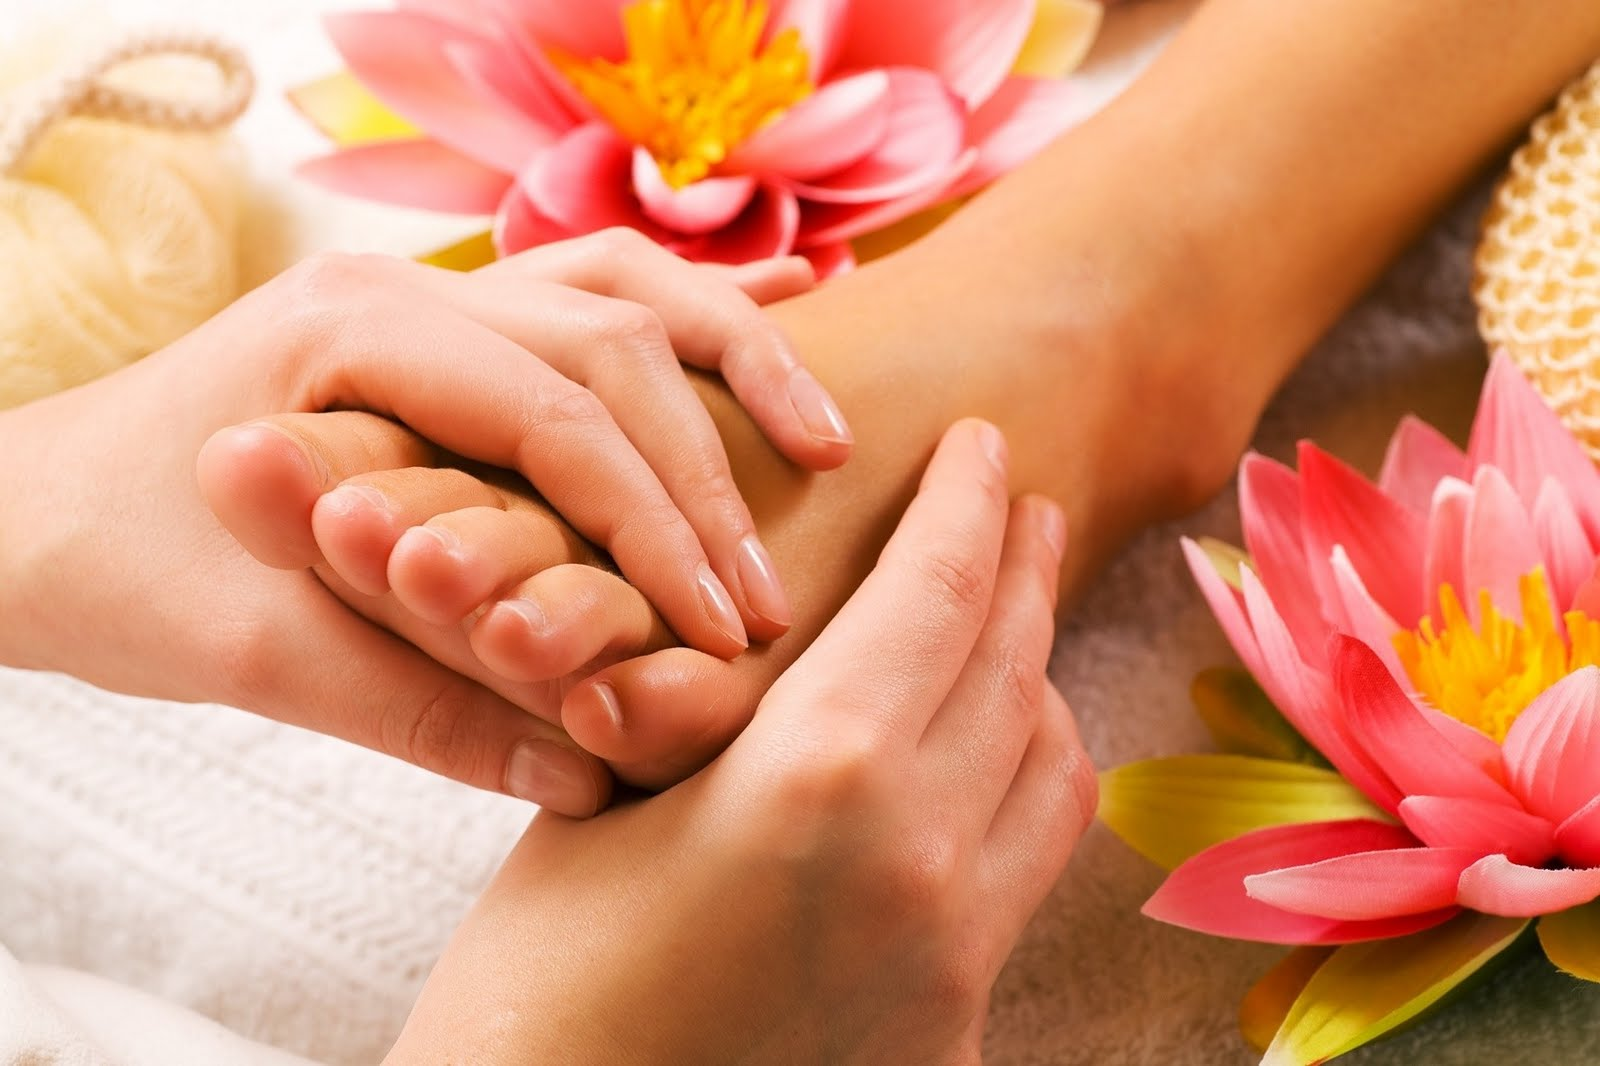 http://conscioushealth.net/wp-content/uploads/2013/09/footmassage1.jpg